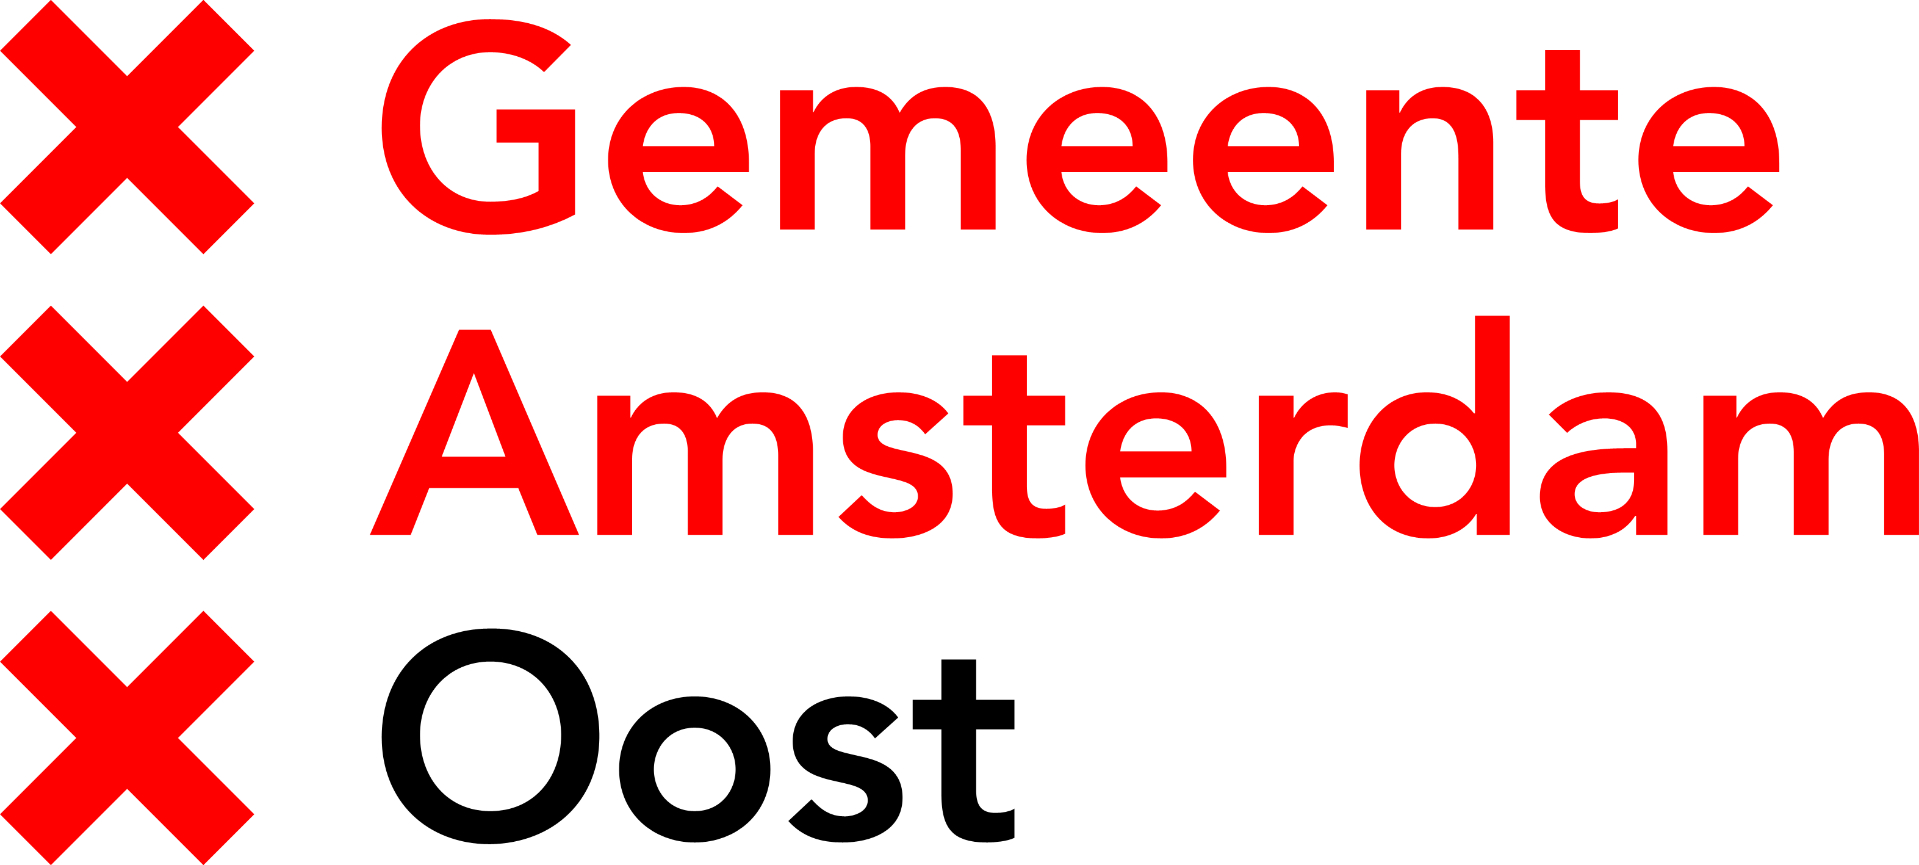 GASD_1_oost